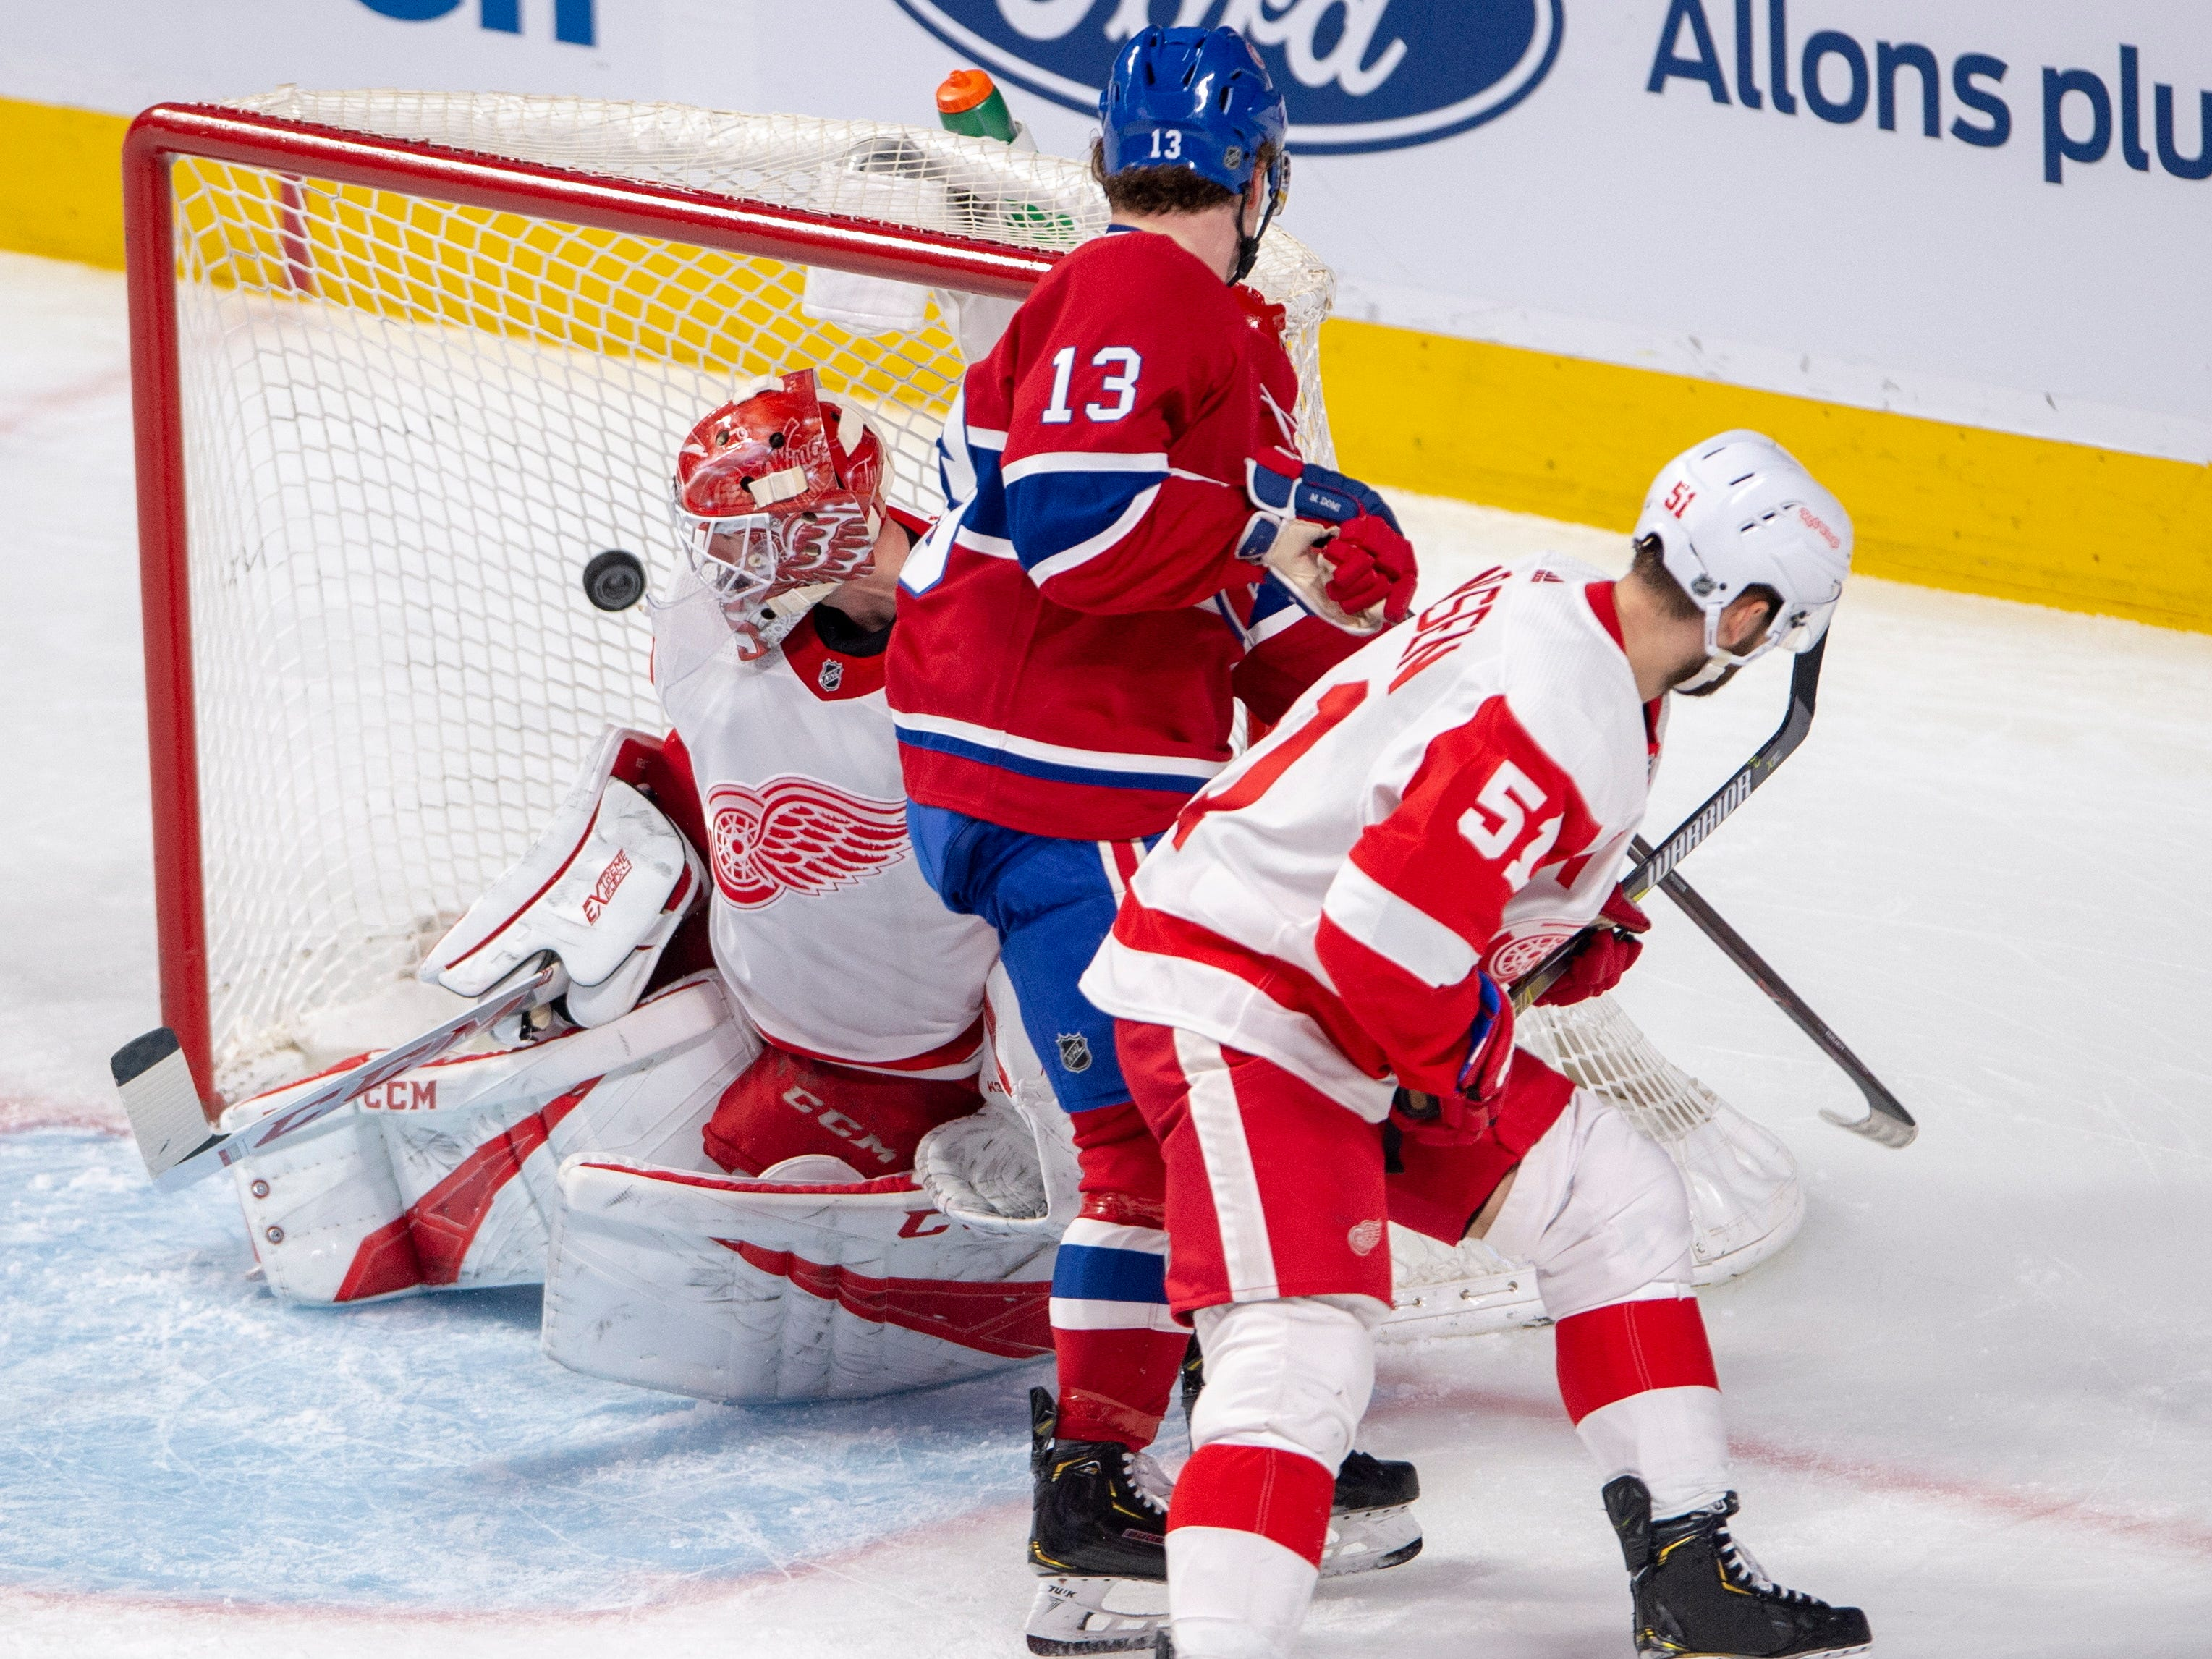 Montreal Canadiens center Max Domi (13) scores against Detroit Red Wings goaltender Jonathan Bernier, as Red Wings center Frans Nielsen defends during the second period Tuesday, March 12, 2019, in Montreal.